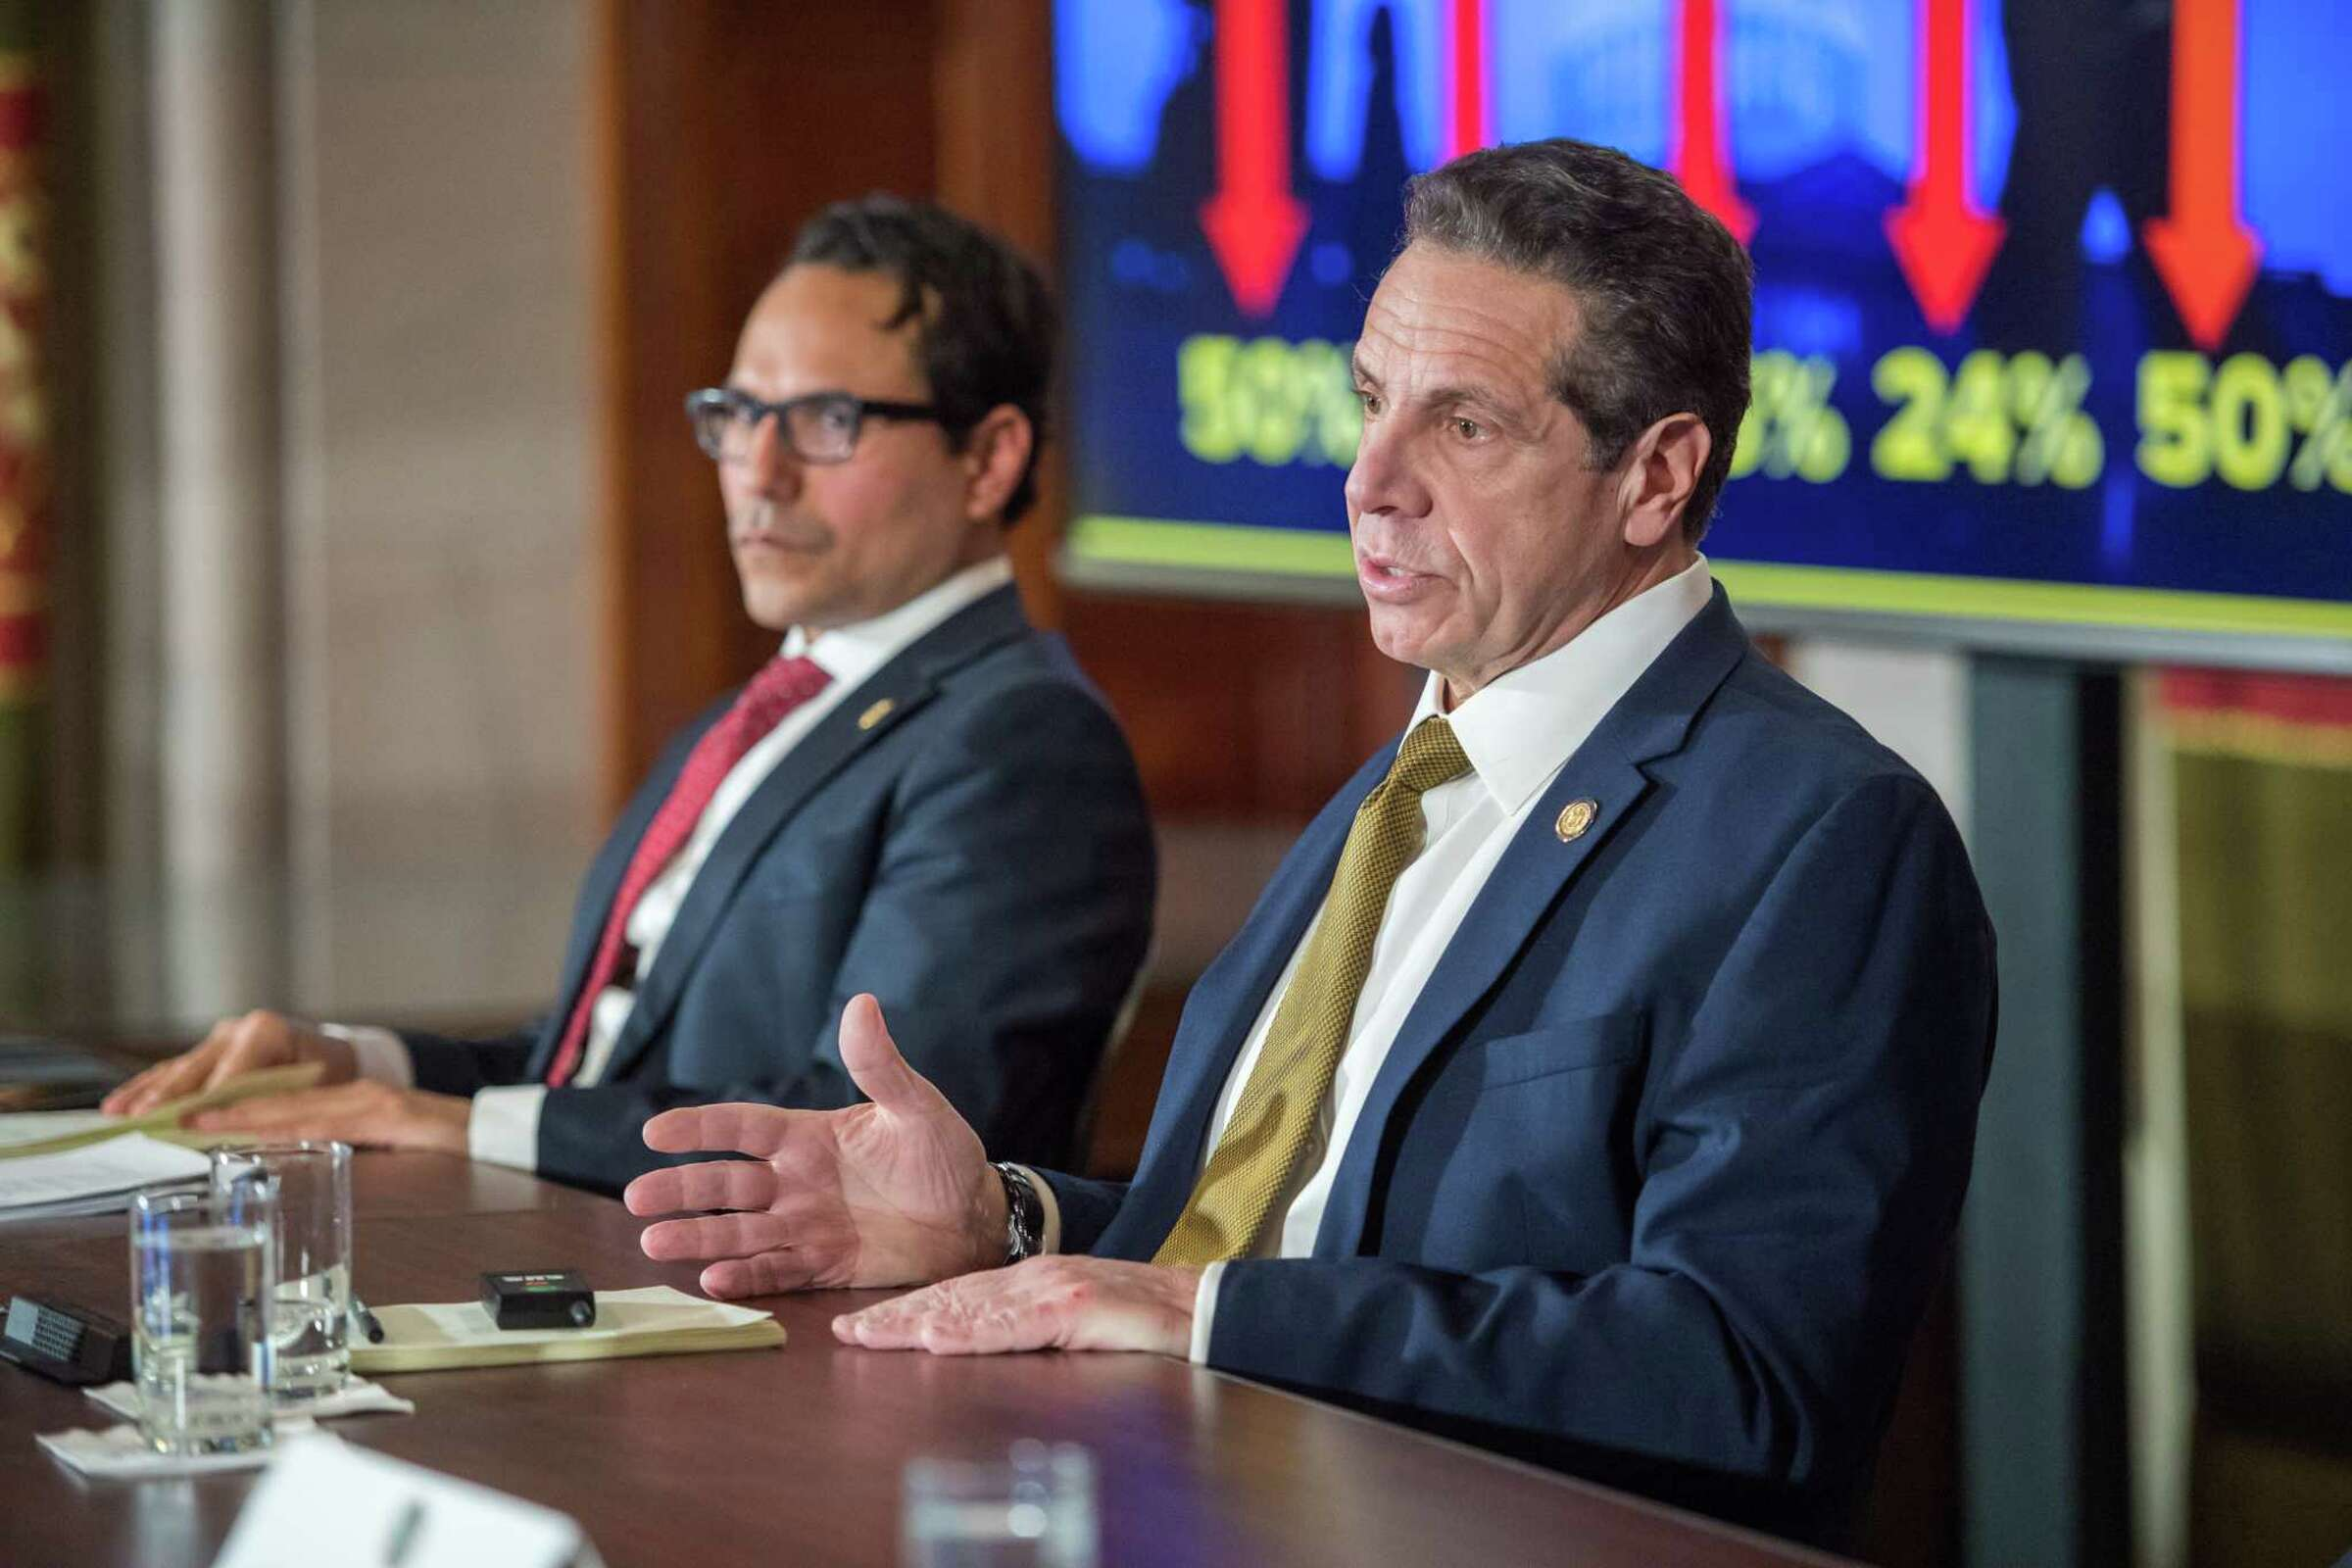 governor cuomo at table speaking